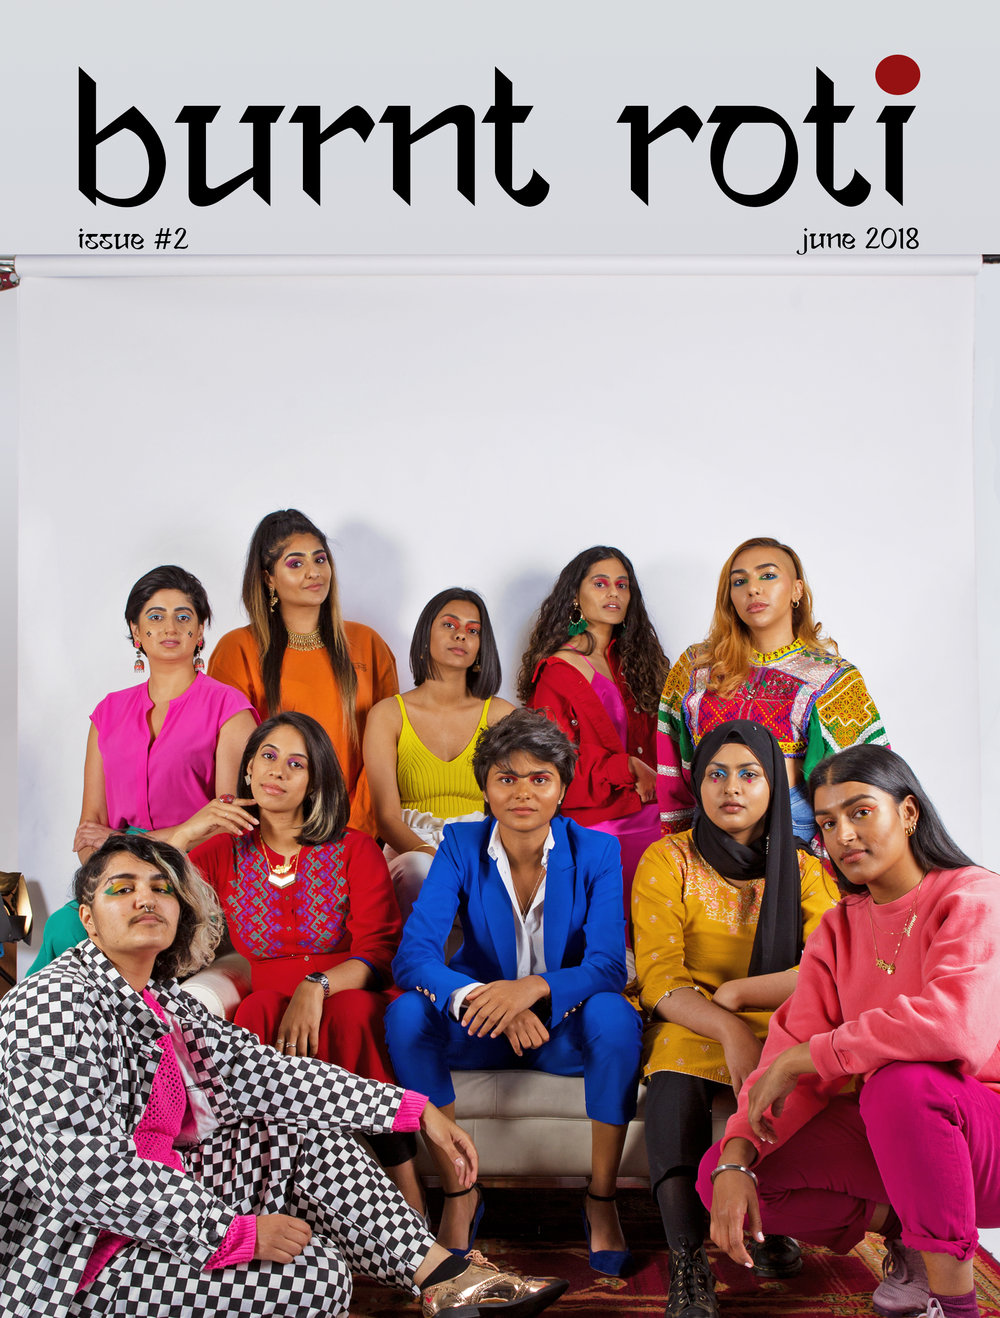 BURNT ROTI  MAGAZINE  Check out the latest issue of Burnt Roti magazine where both of our co-founders are cover stars and have an interview inside too! It also features interviews with Nish Kumar, Fran Lobo, Leo Kalyan, Natco and over 100 pages of art, photography, essays, interviews and an introduction to some of Burnt Roti's favourite South Asian female, queer and non binary creatives.